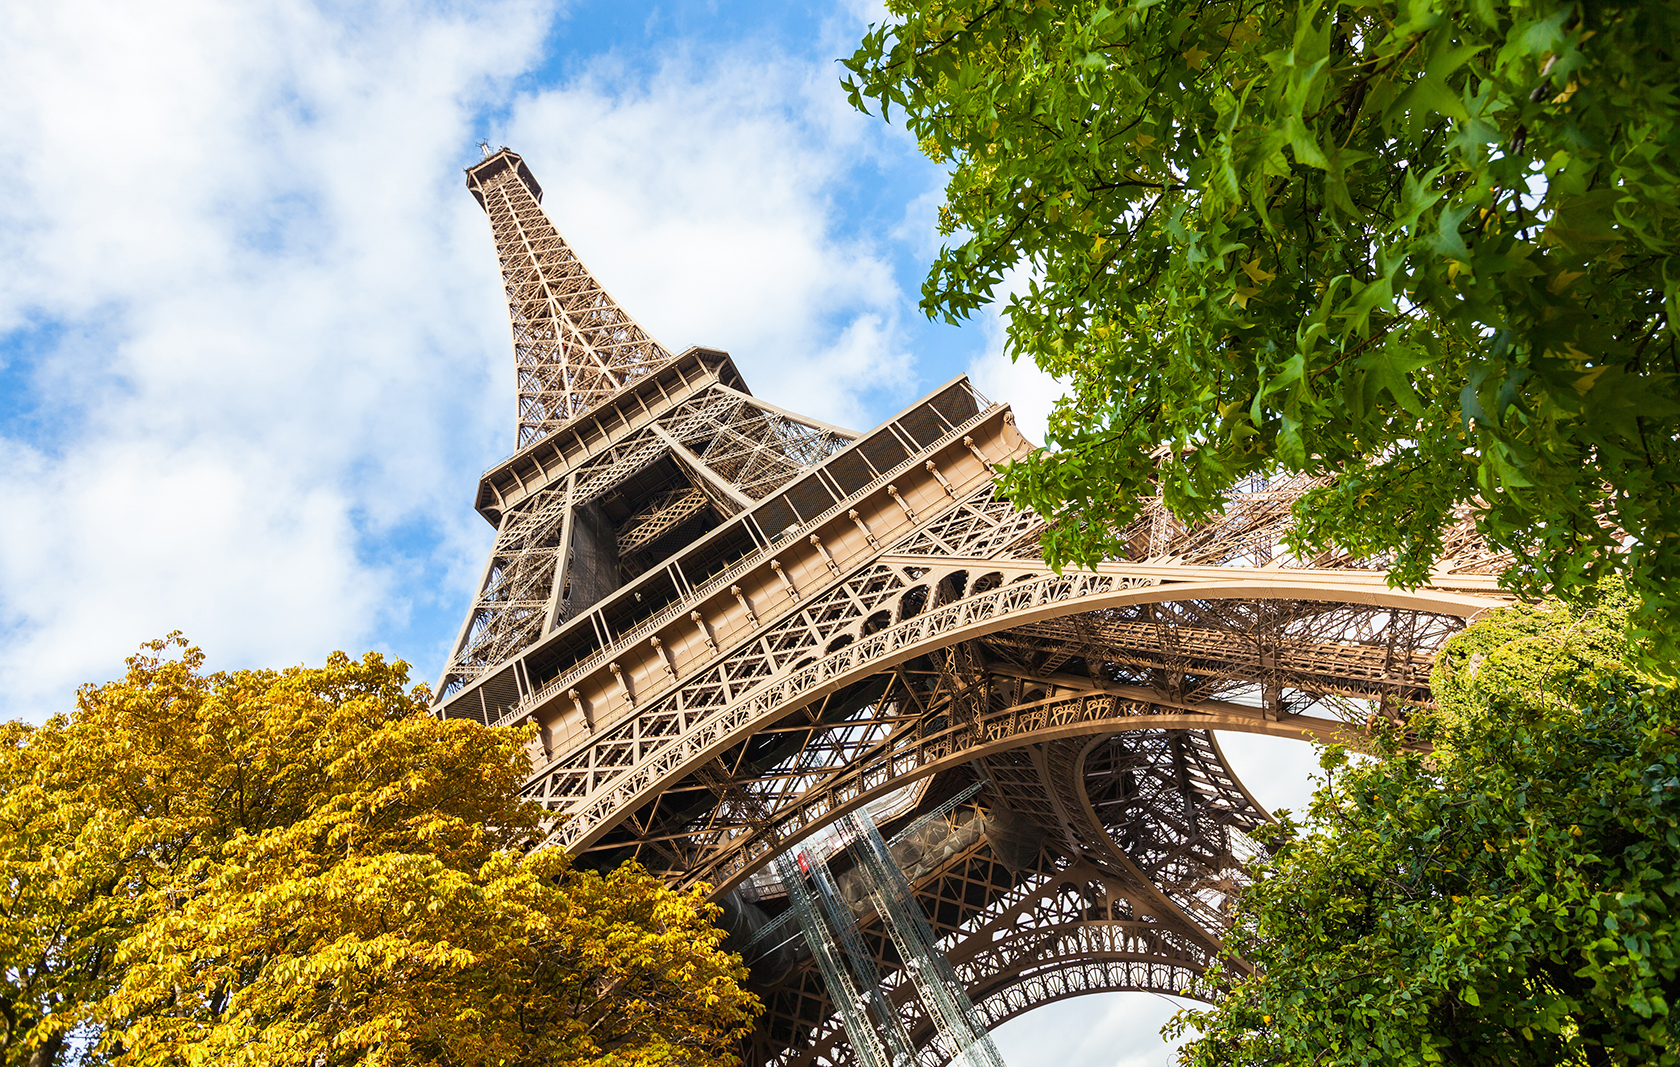 A close view from the base of the Eiffel Tower in Paris